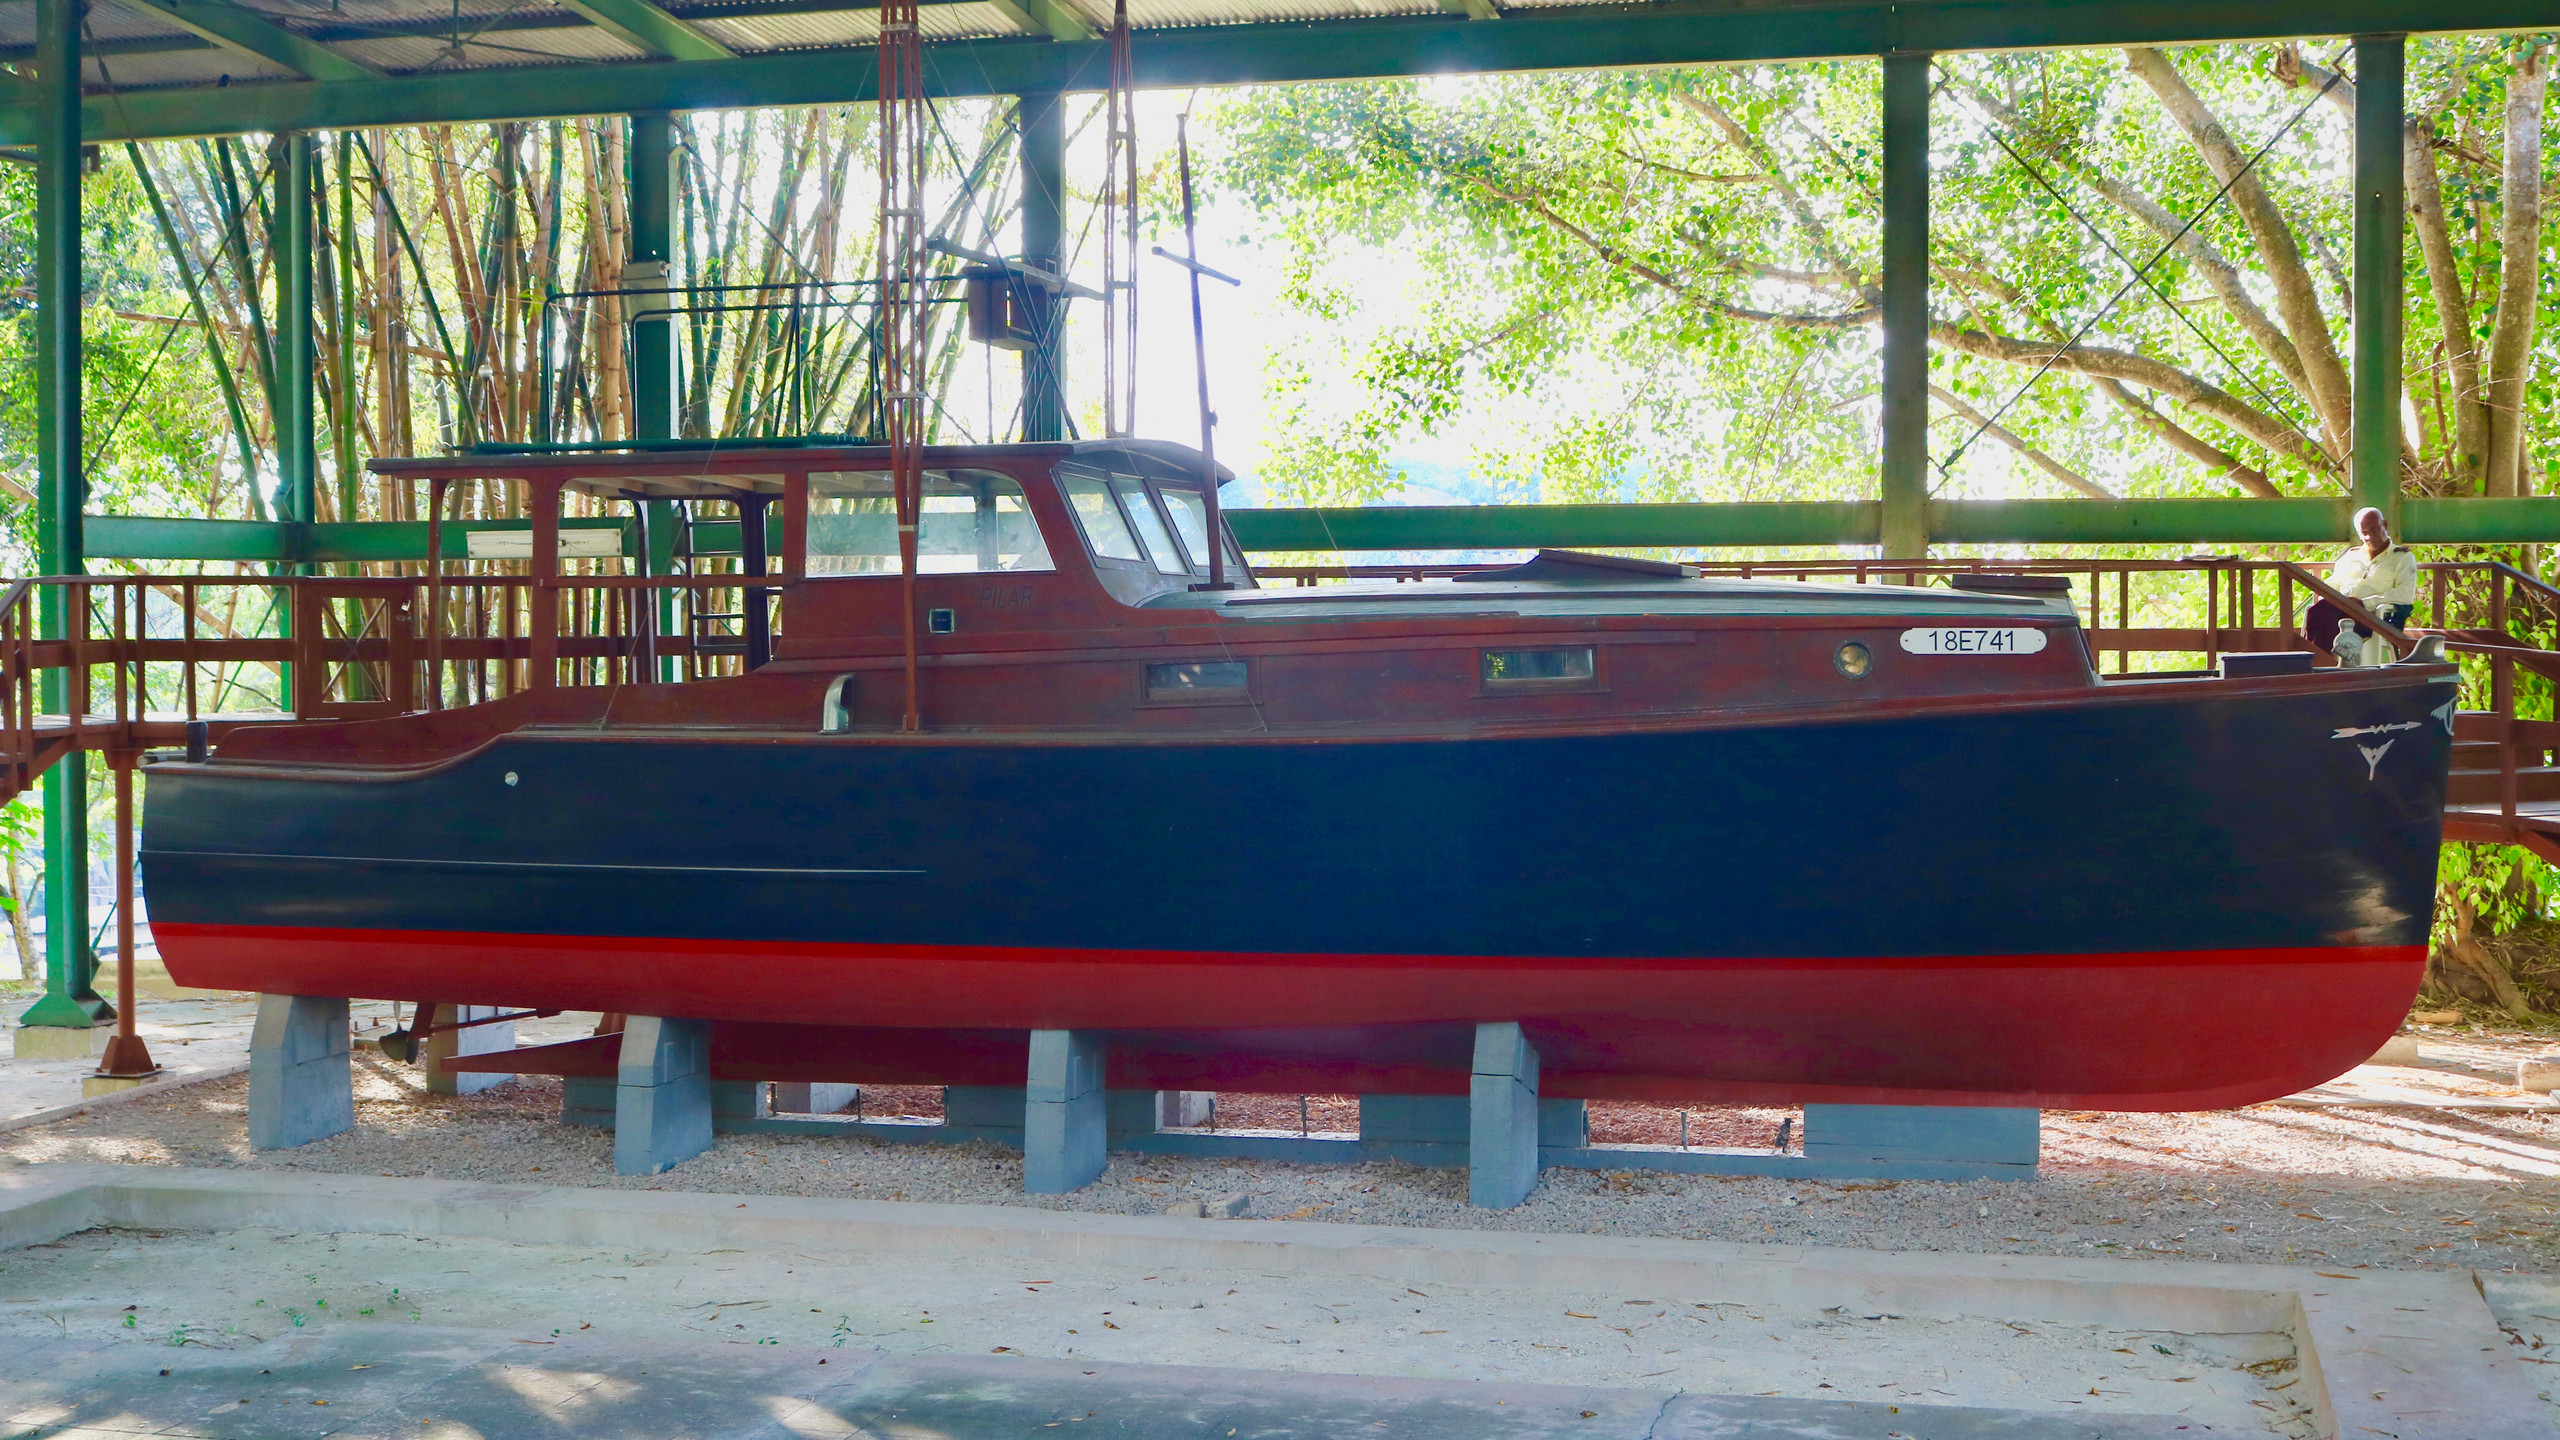 Ernest Hemingway's famous blue and red boat at Finca Vigia in Havana, Cuba.